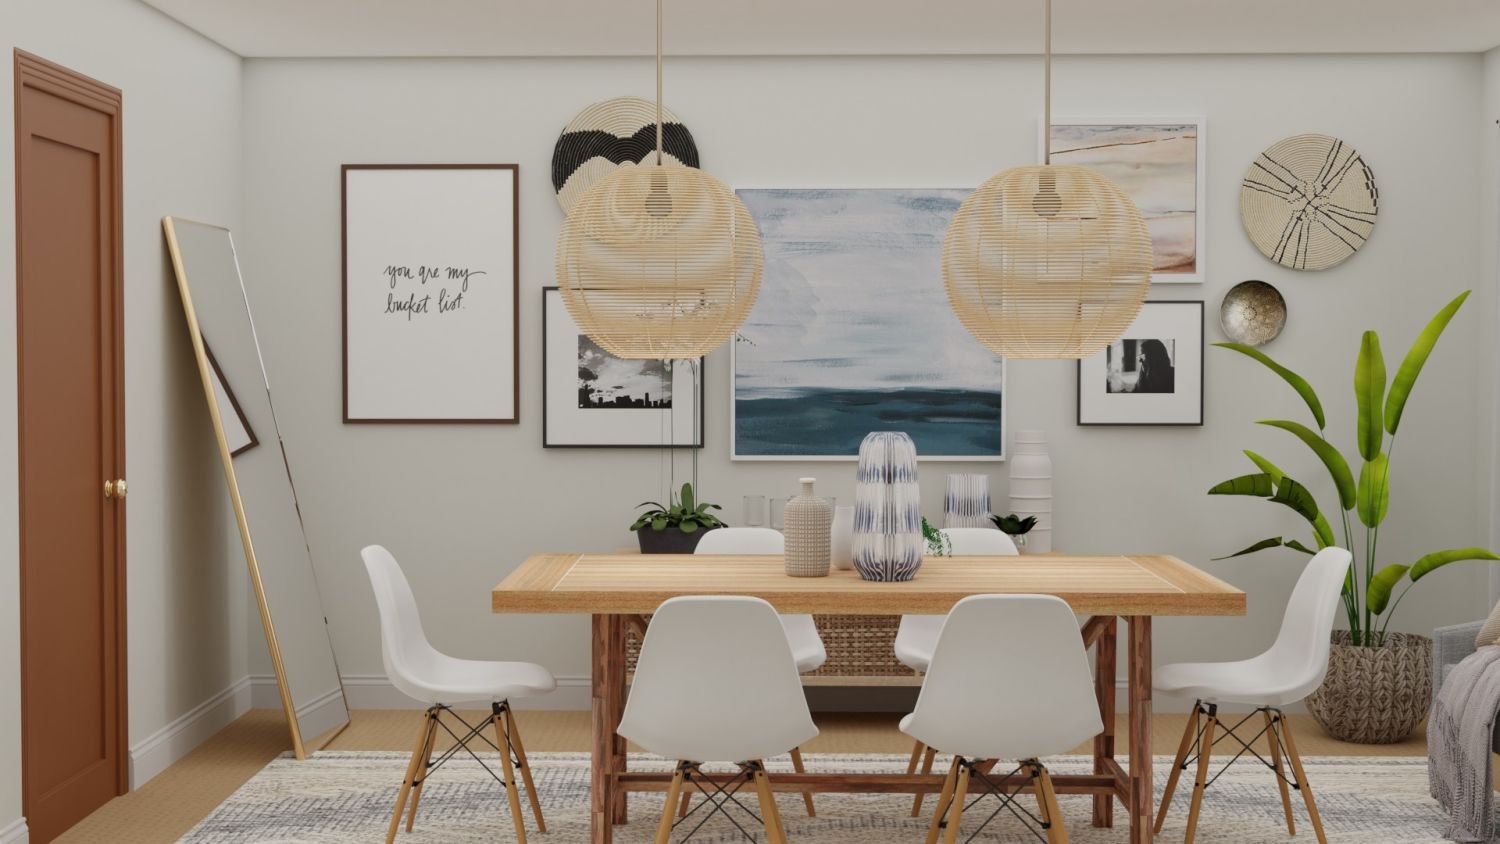 Statement pieces in dining room